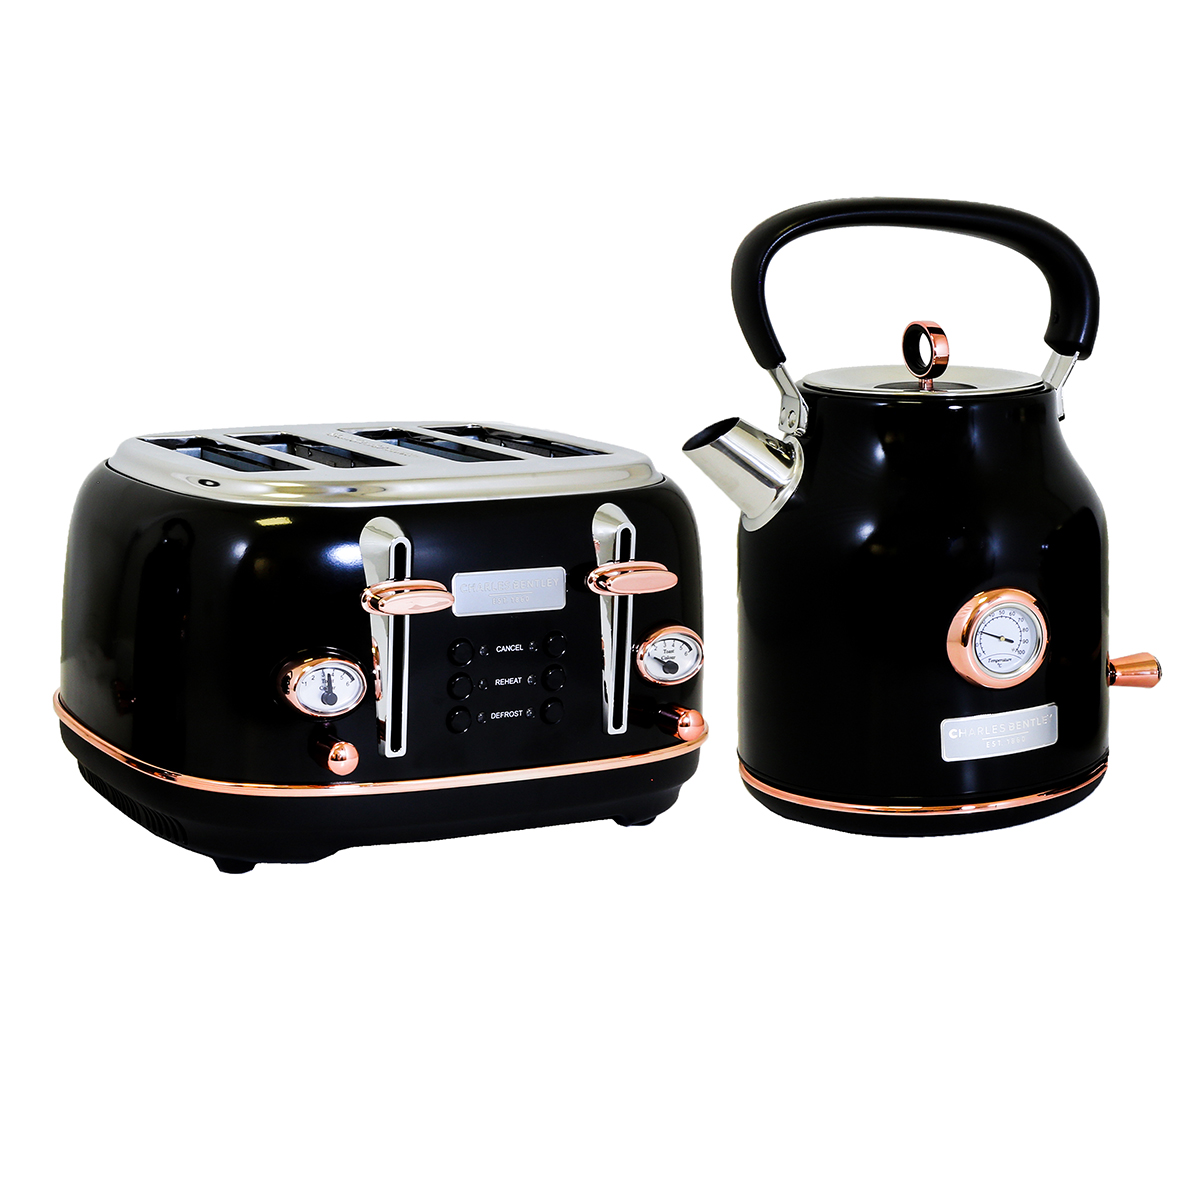 Black Kettle and Toaster Set